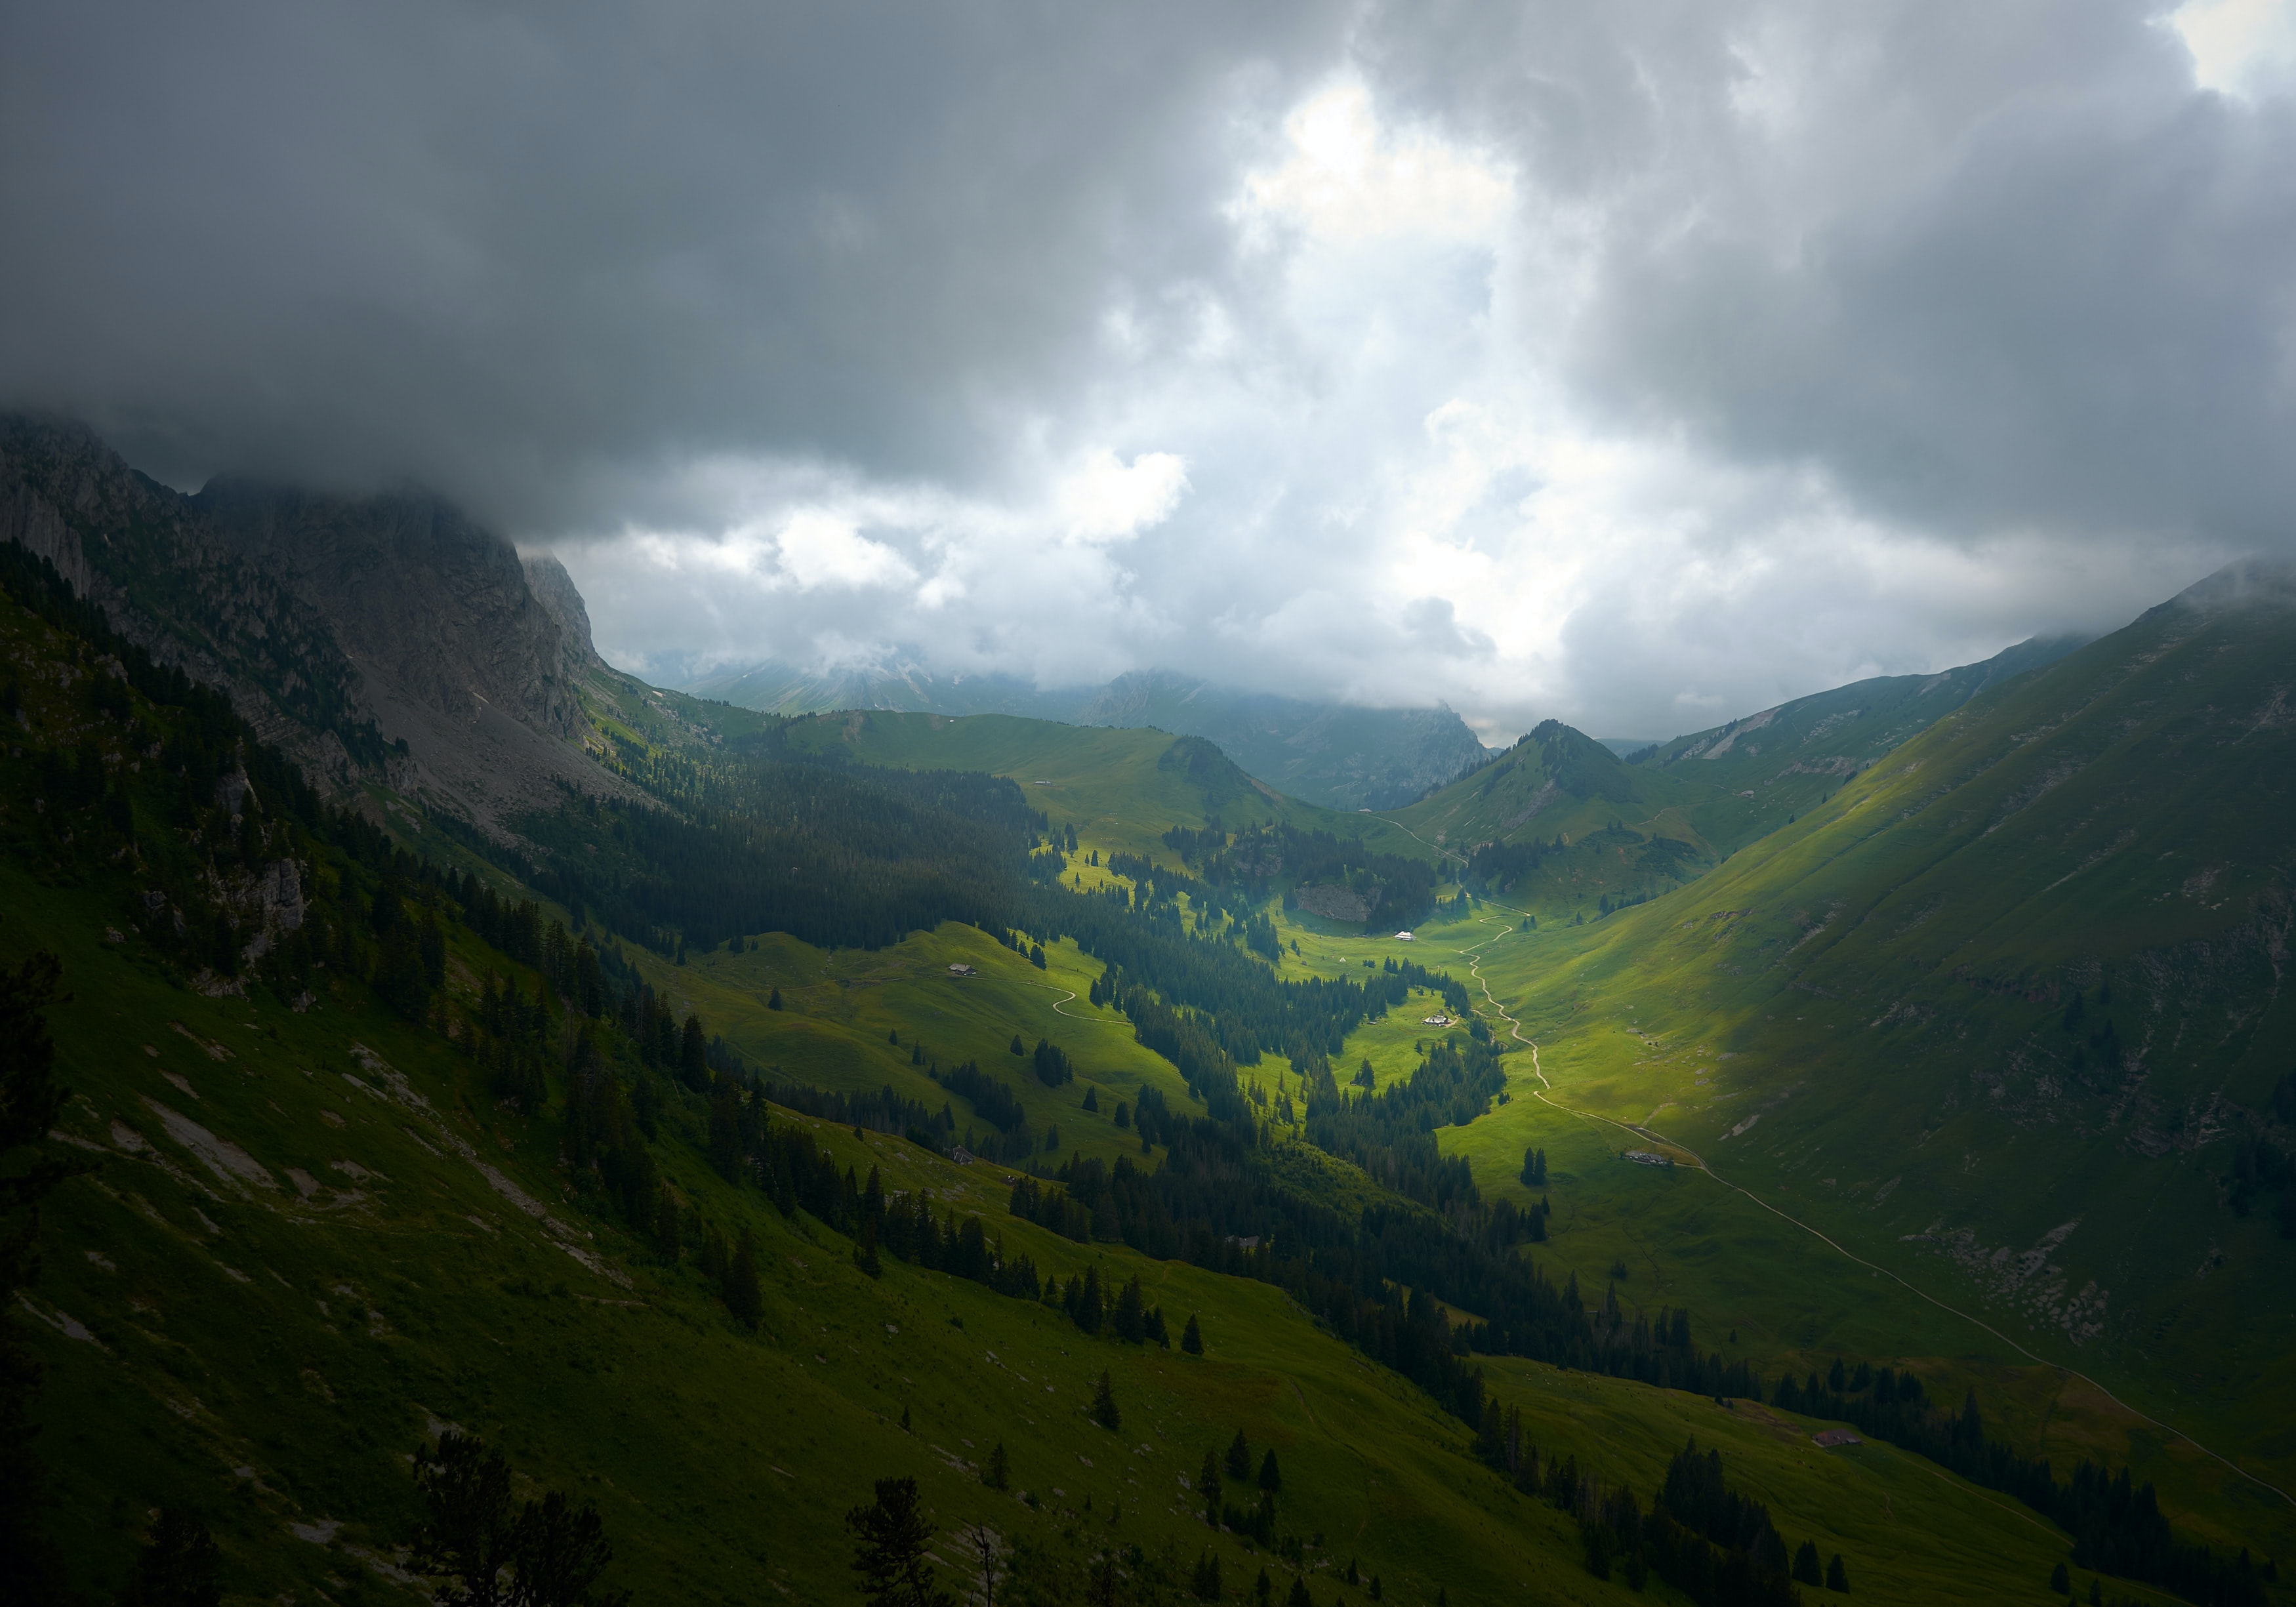 Sun shining through the thick clouds illuminates the bottom of a green valley